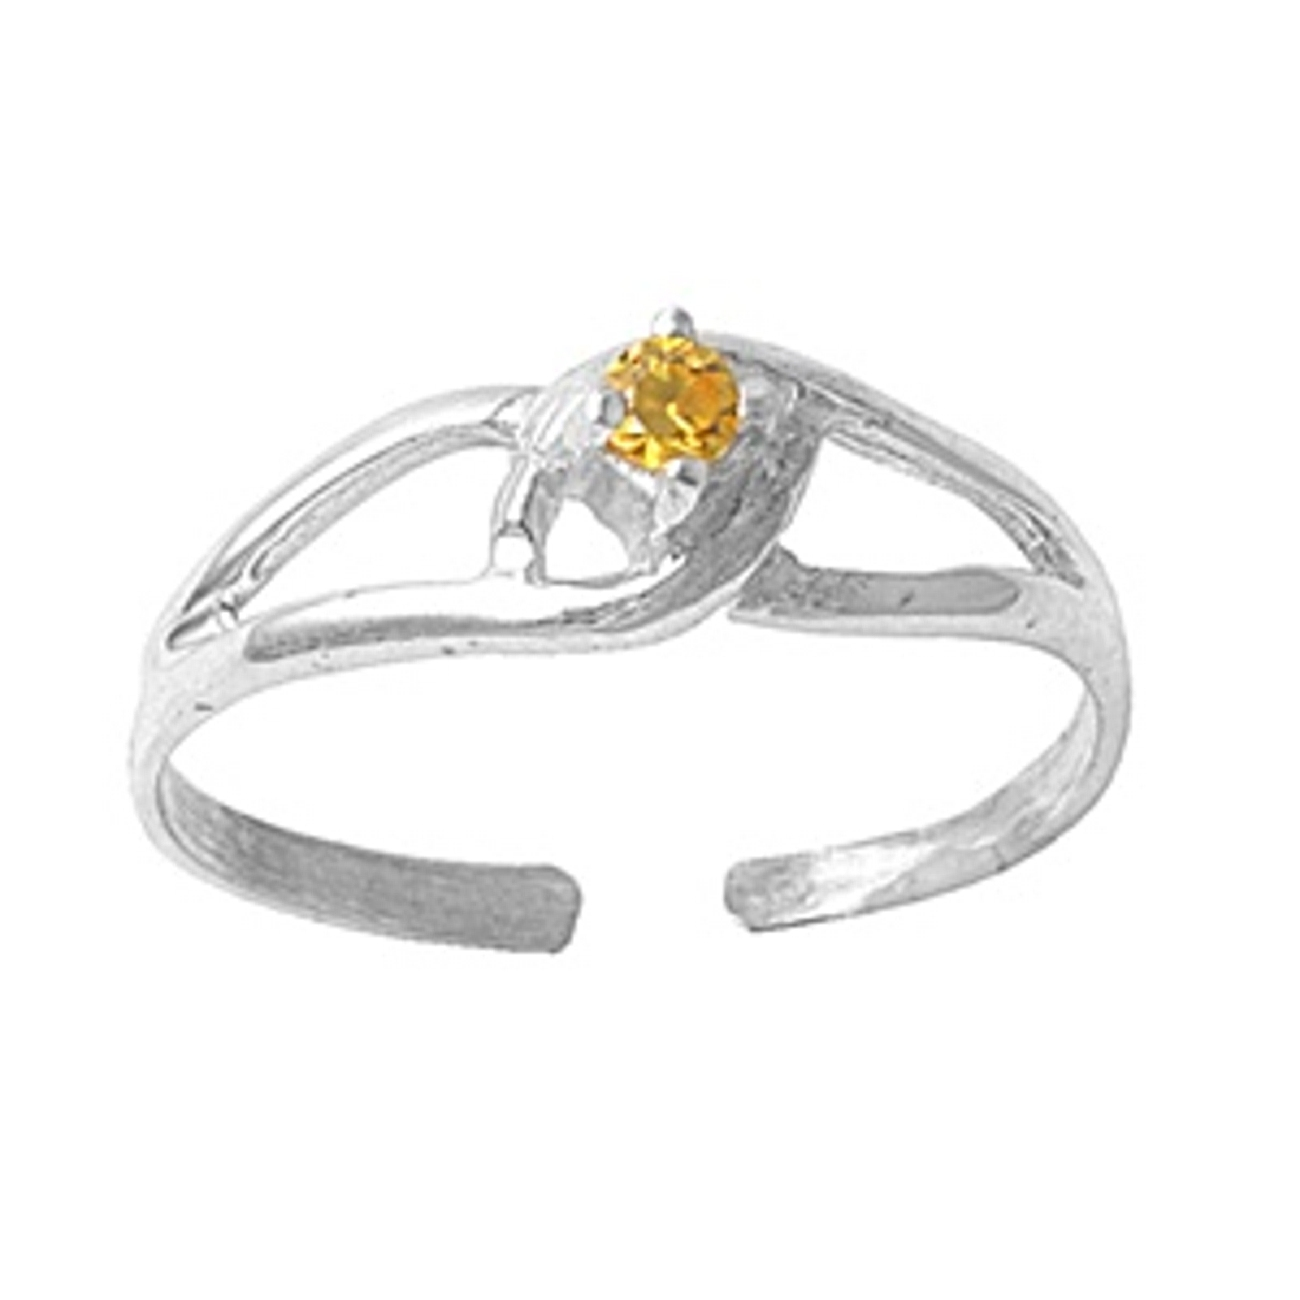 Yellow Citrine Cubic Zirconia Clutched Adjustable Toe Ring